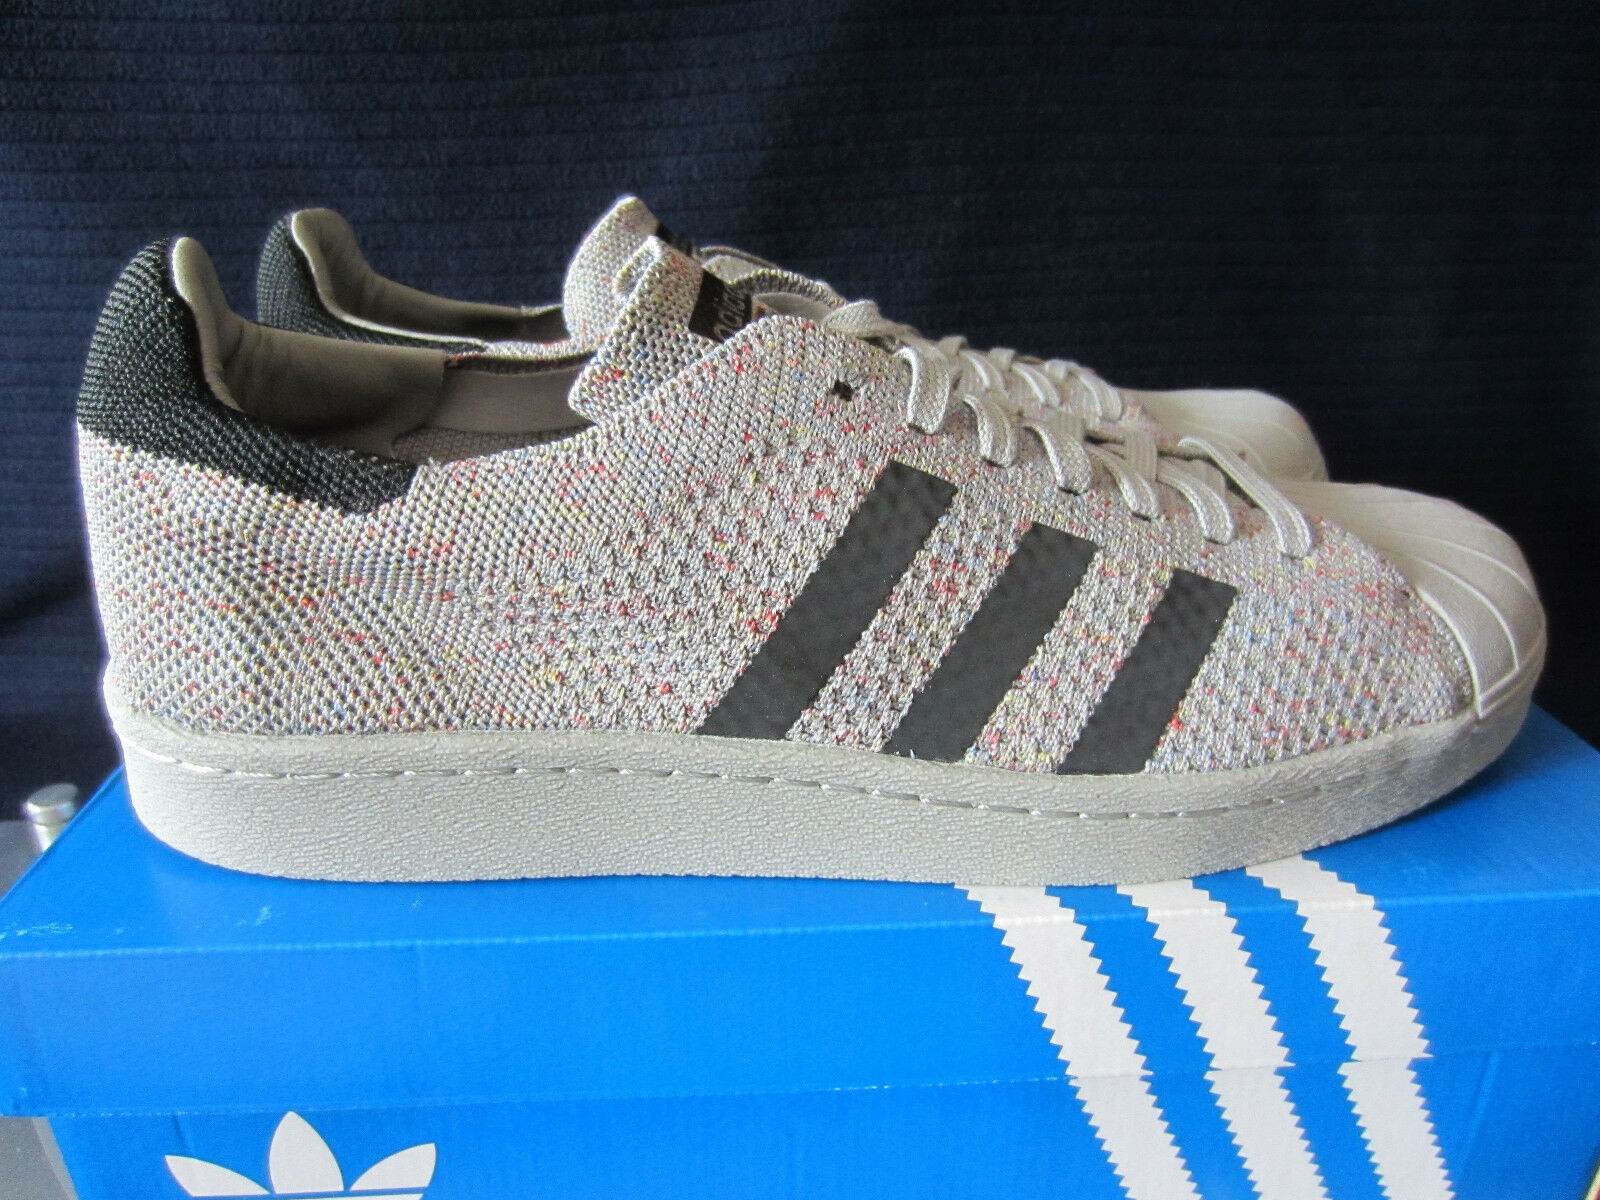 adidas ORIGINALS SUPERSTAR 80S PK S75843 Sneakers Grau Gr.44 44 2/3 46. NEU OVP! Seasonal clearance sale